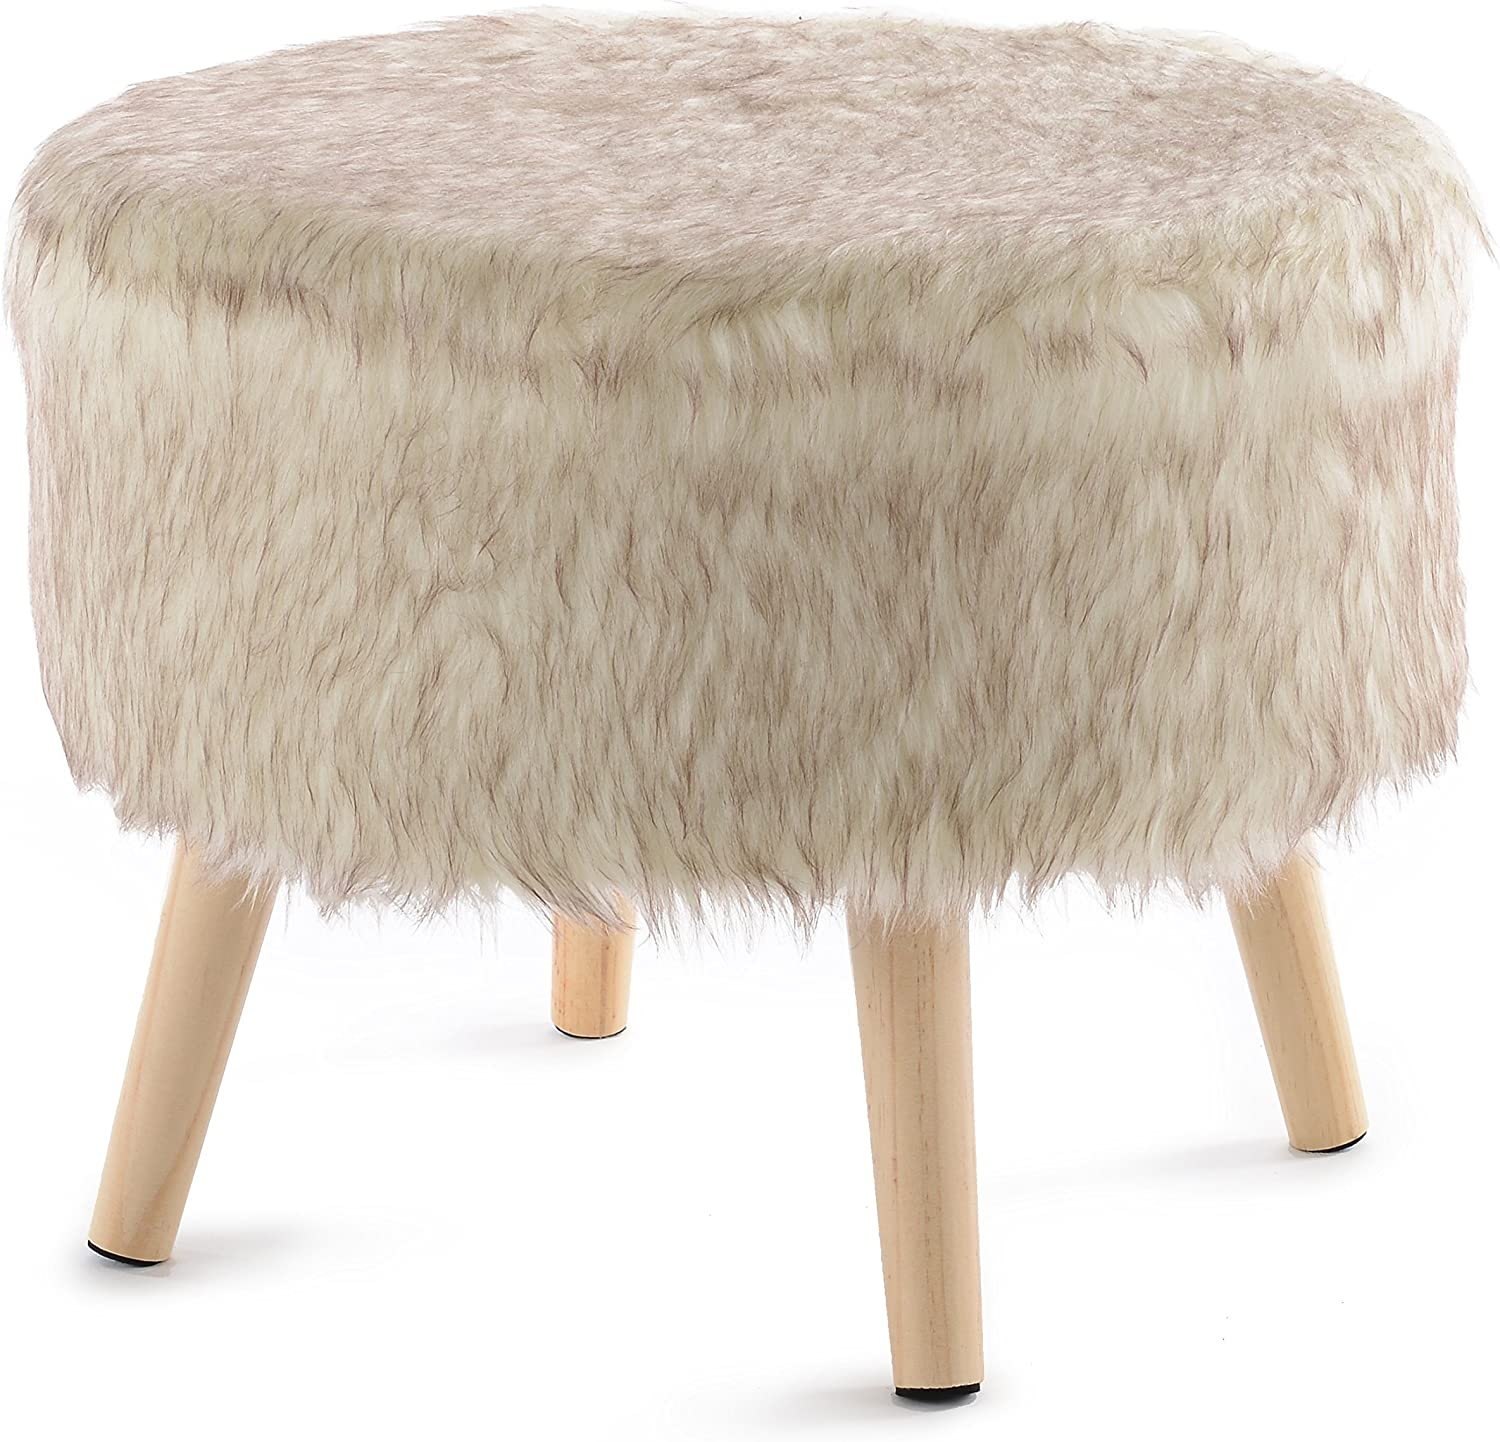 cheer collection 17 round ottoman super soft decorative tan wolf faux fur foot stool with wood legs